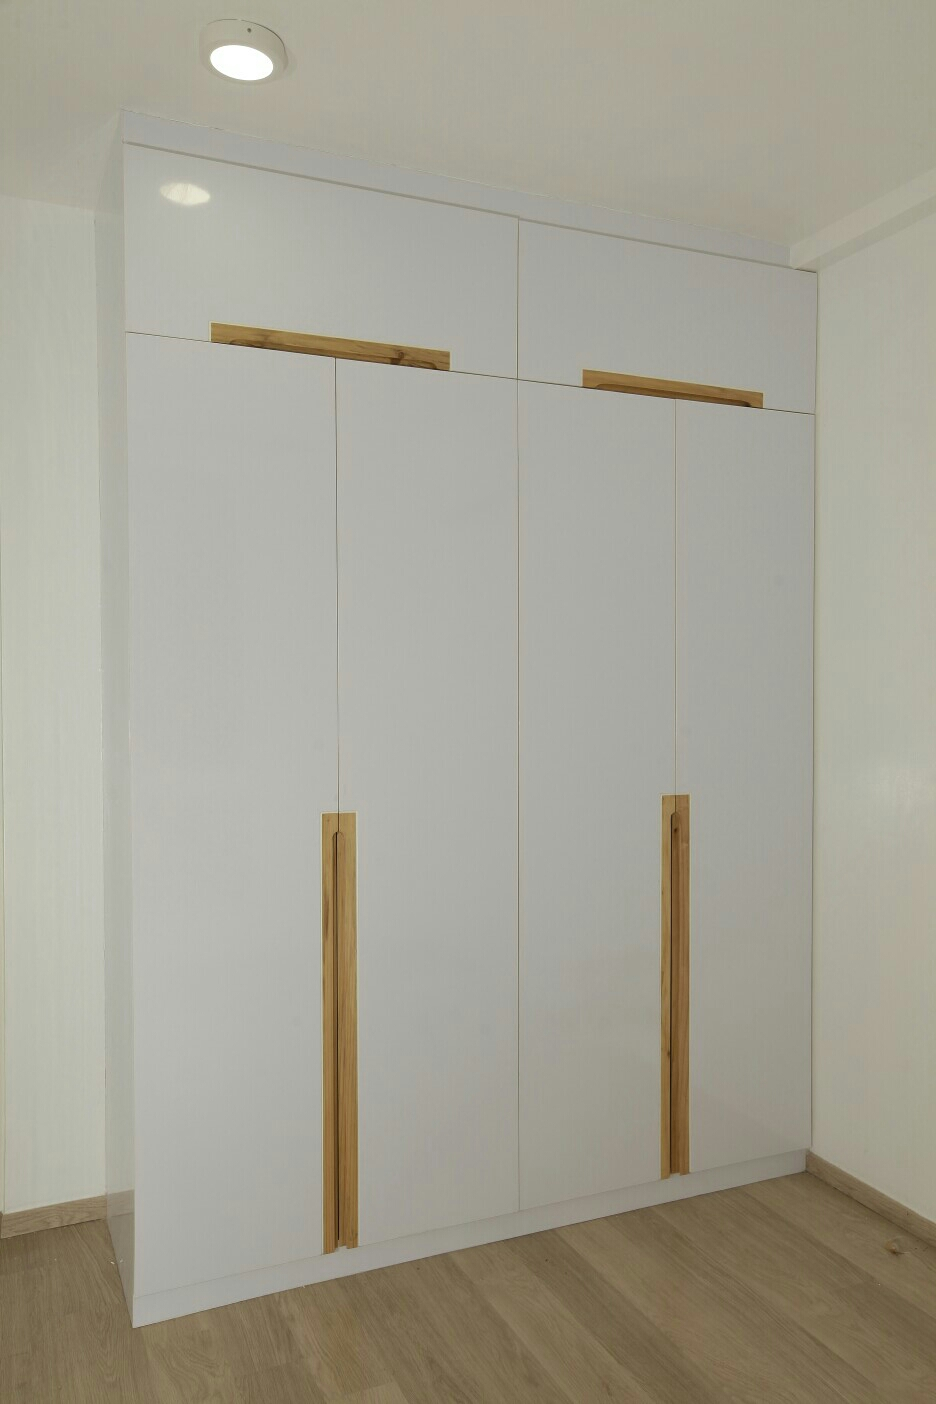 LOHGENDRA INTERIORS providing Concealed Wooden Handle Wardrobes at all over Tamilnadu and Chennai OMR